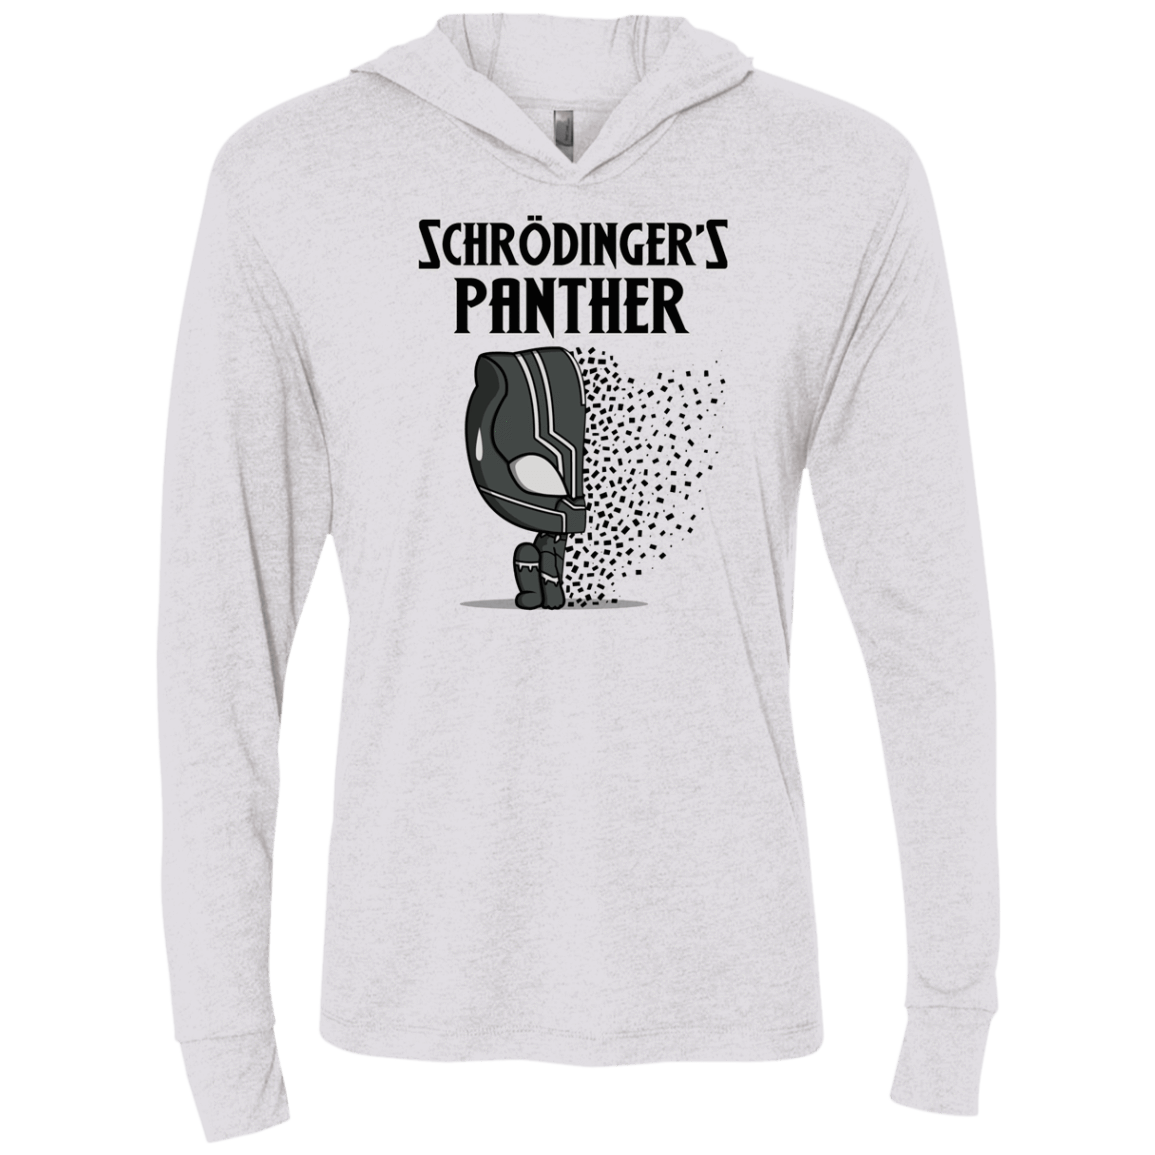 T-Shirts Heather White / X-Small Schrodingers Panther Triblend Long Sleeve Hoodie Tee